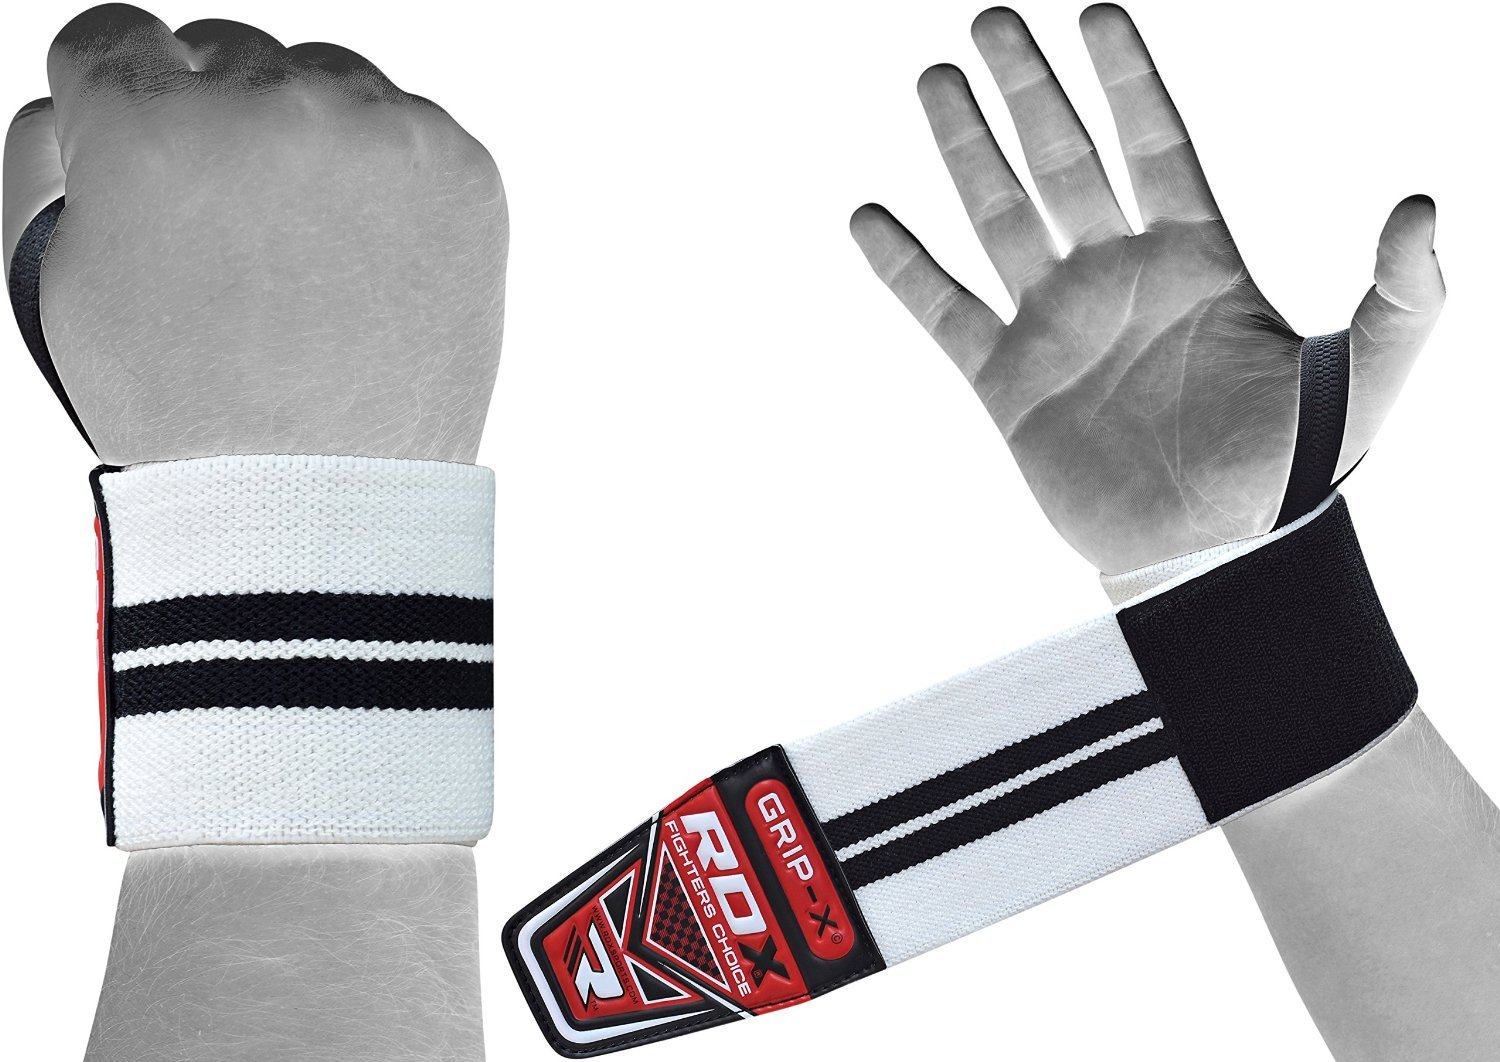 Workout and Xfit Exercise Powerlifting Bodybuilding Gymnastics Elasticated Straps Strength Training RDX Weight Lifting Wrist Support Wraps with Thumb Loop